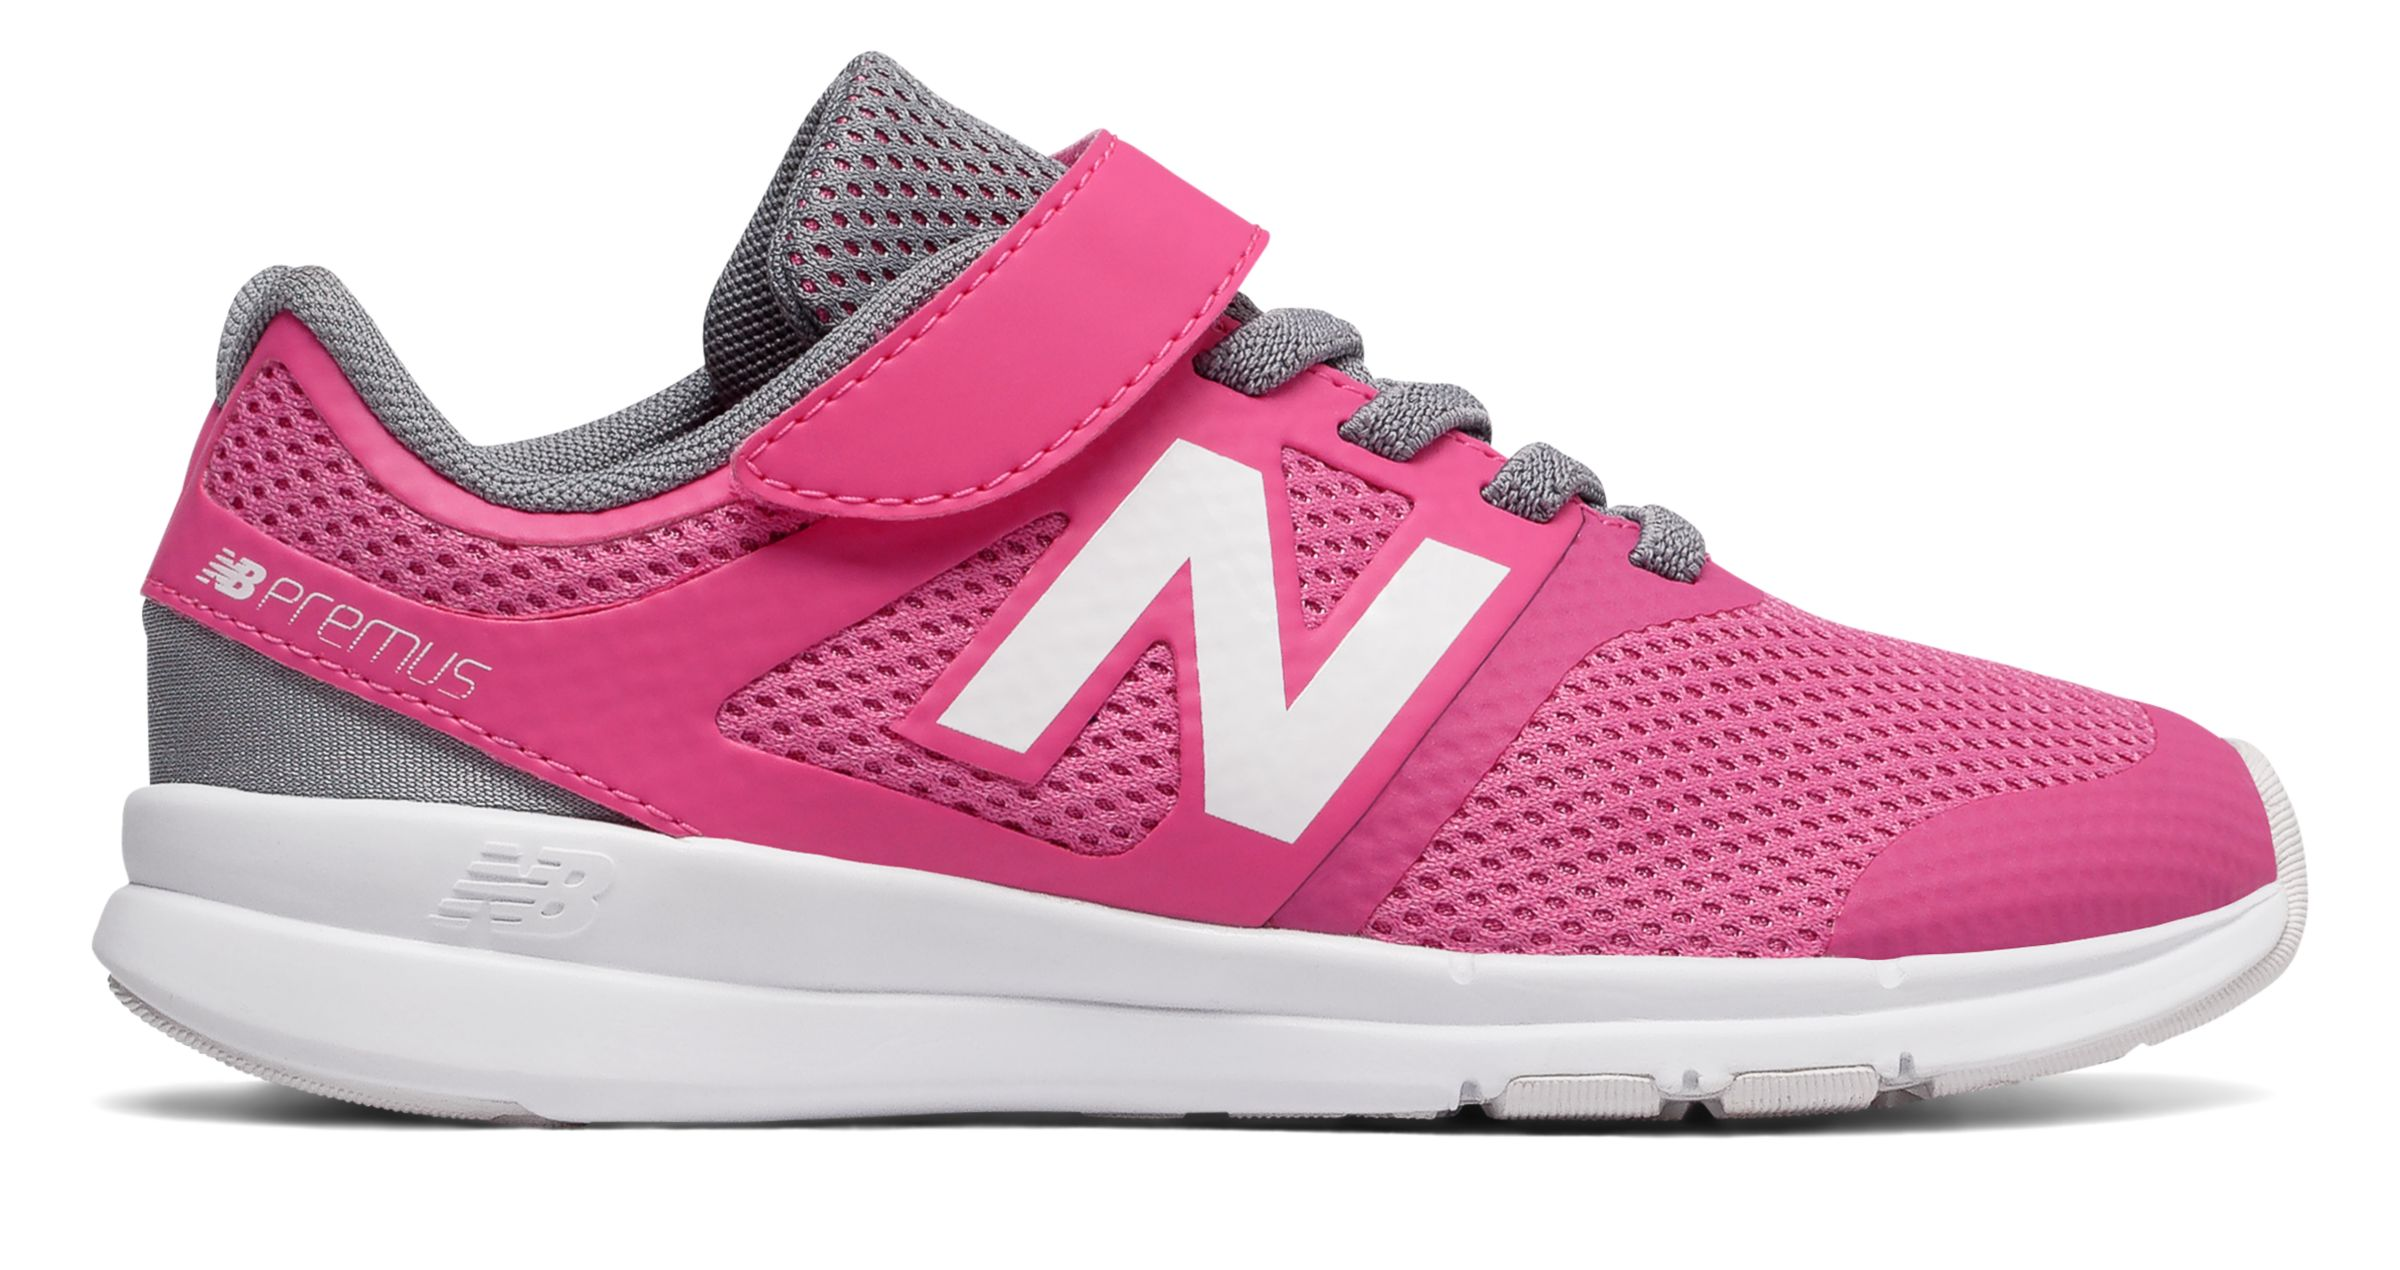 NB Premus Trainer, Pink with Grey